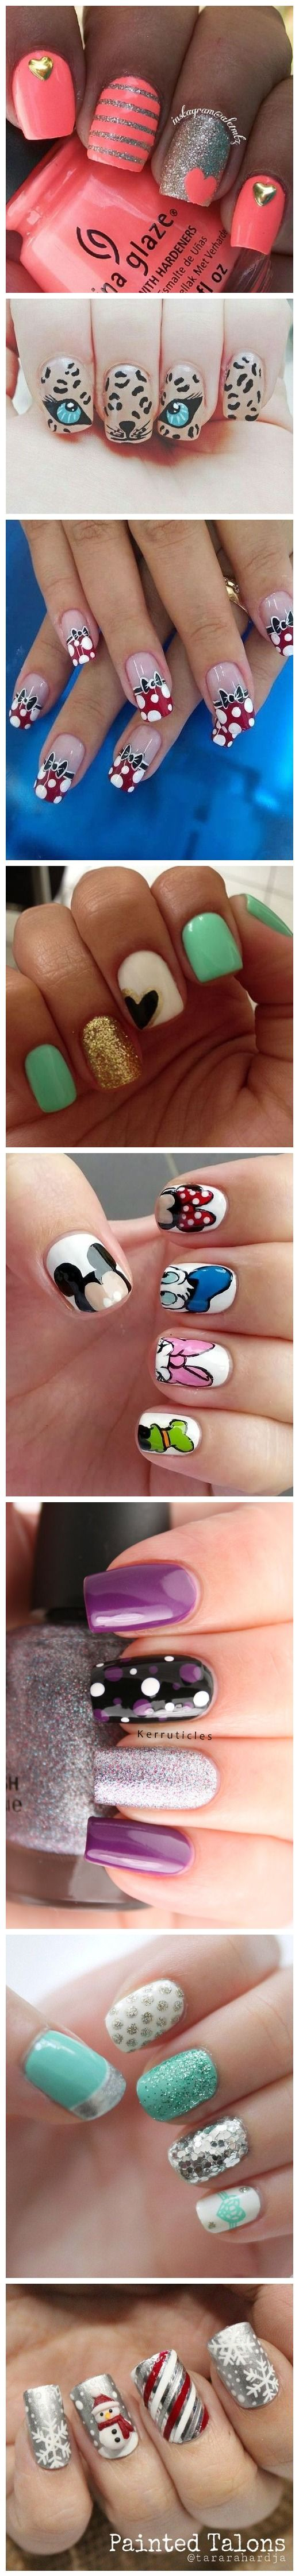 These would be fun for kids nails nails pinterest simple nail